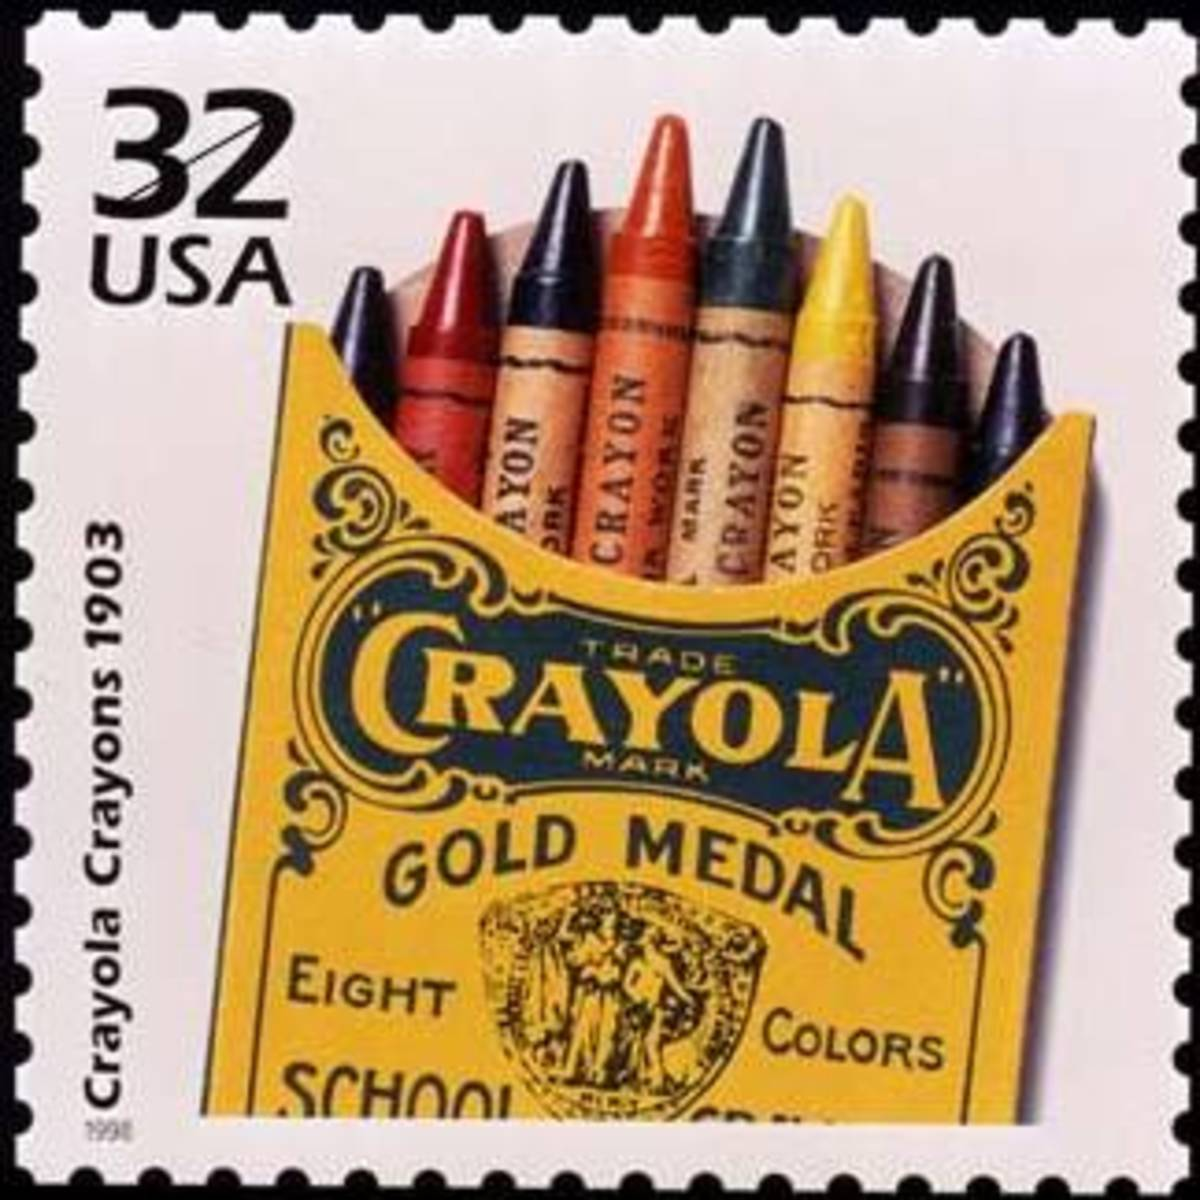 1903 box of crayola crayons on a stamp